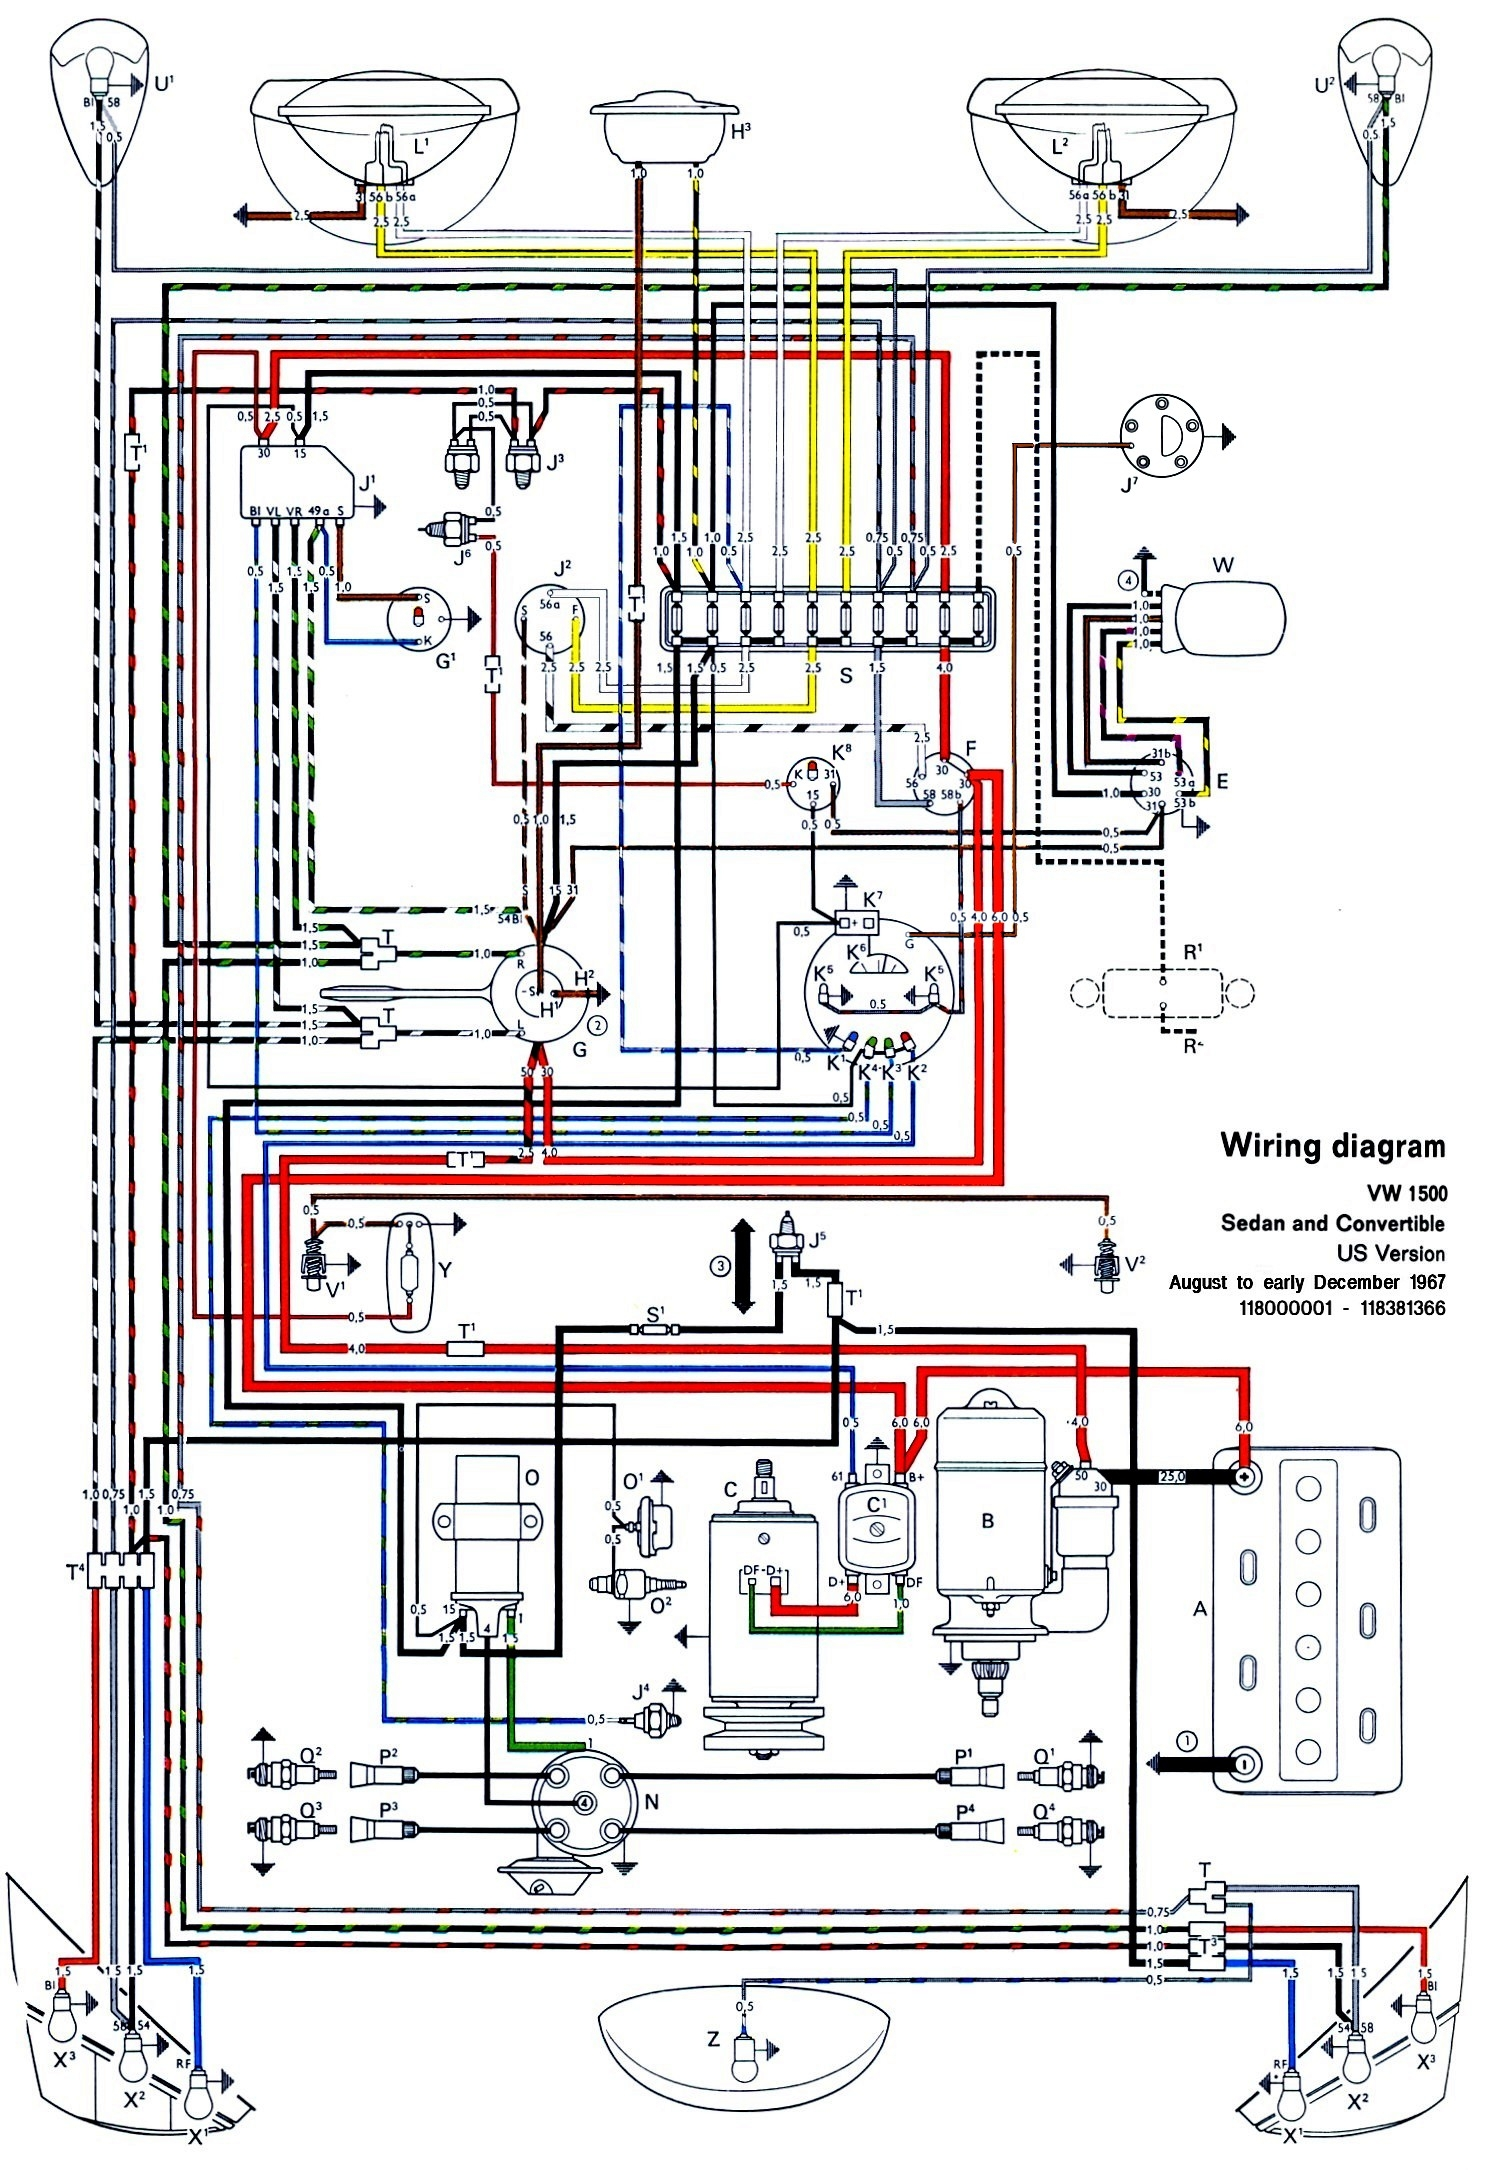 vw beetle wiring diagram 2000 Collection-2000 vw beetle ignition switch wiring diagram Collection 1968 Vw Wiring Diagram Wiring Diagrams 1984 18-q